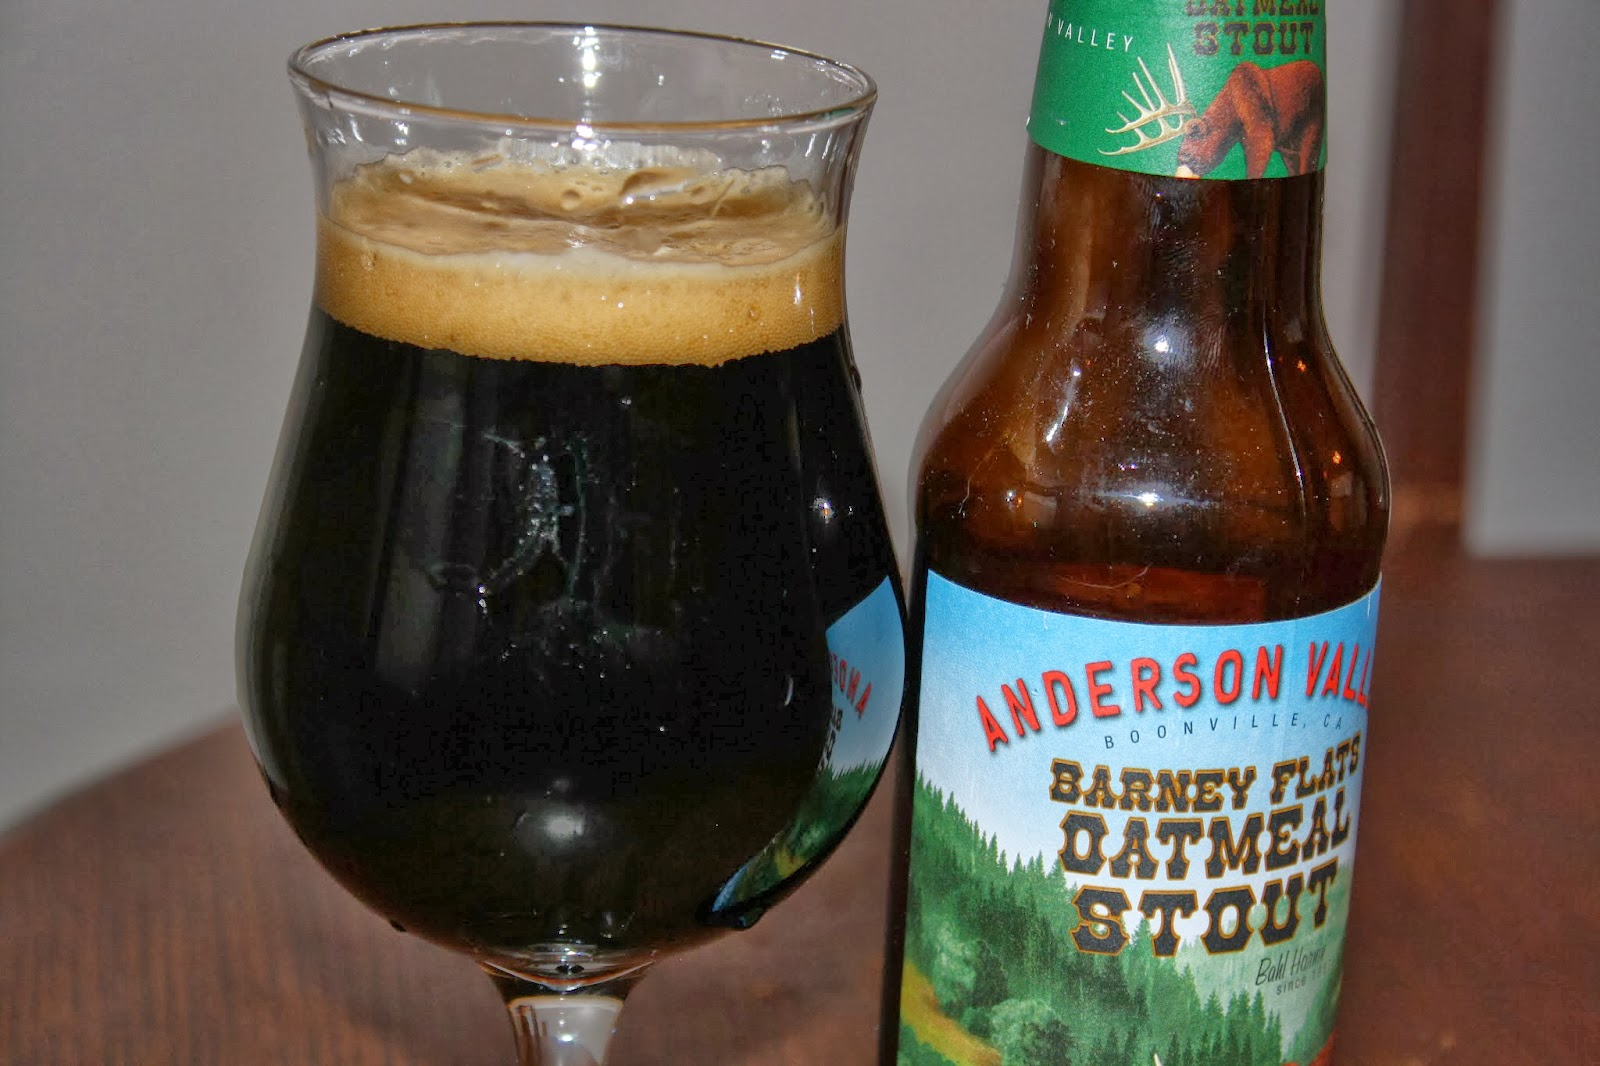 Anderson Valley Brewing Company, Barney Flats Oatmeal Stout, Craft Beer, Boonville, California